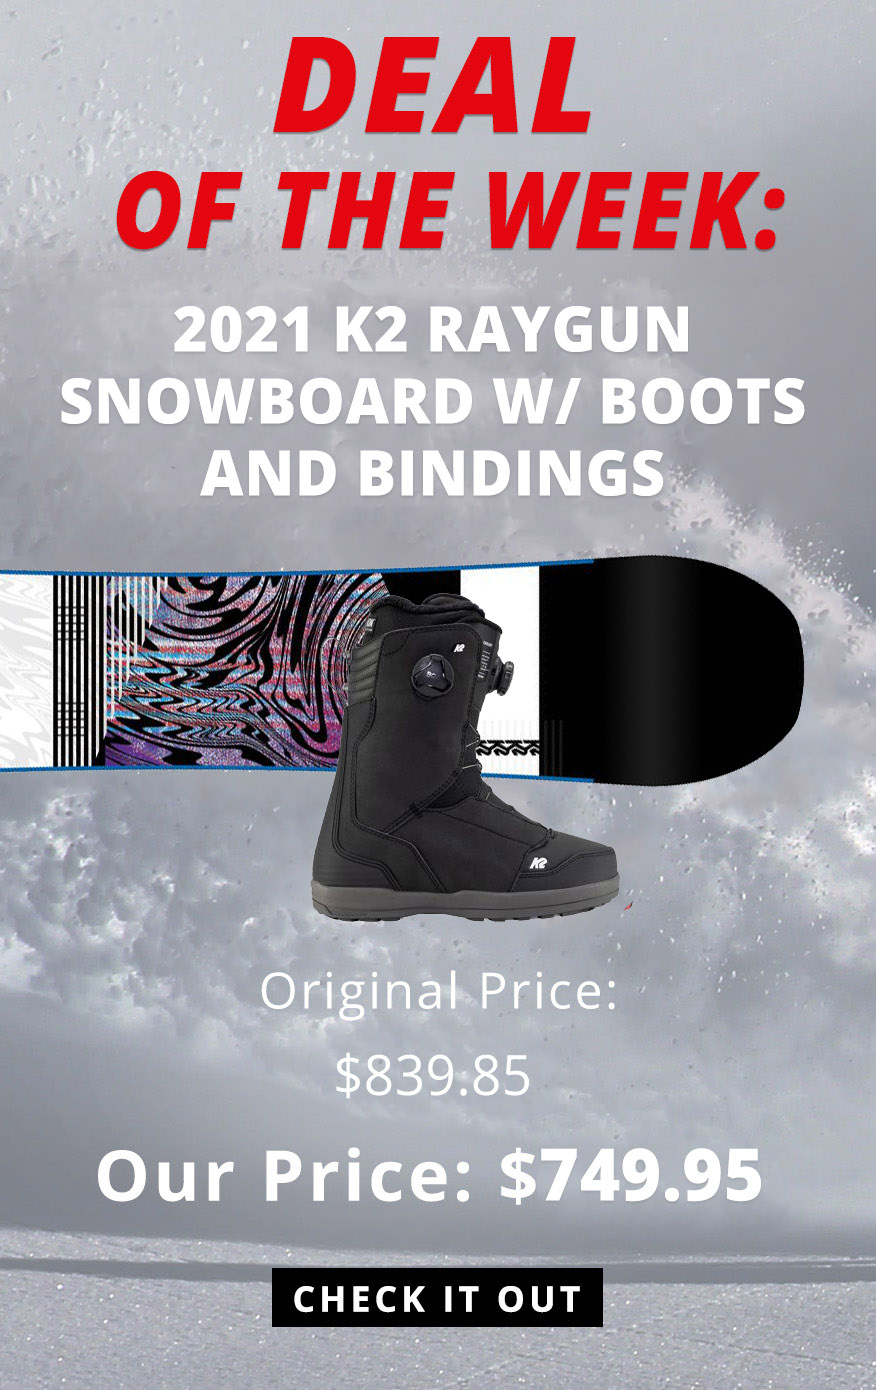 2021 K2 RayGun Snowboard w/ Boots and Bindings Original Price: $839.85 - Our Price: $749.95 - Shop Now.